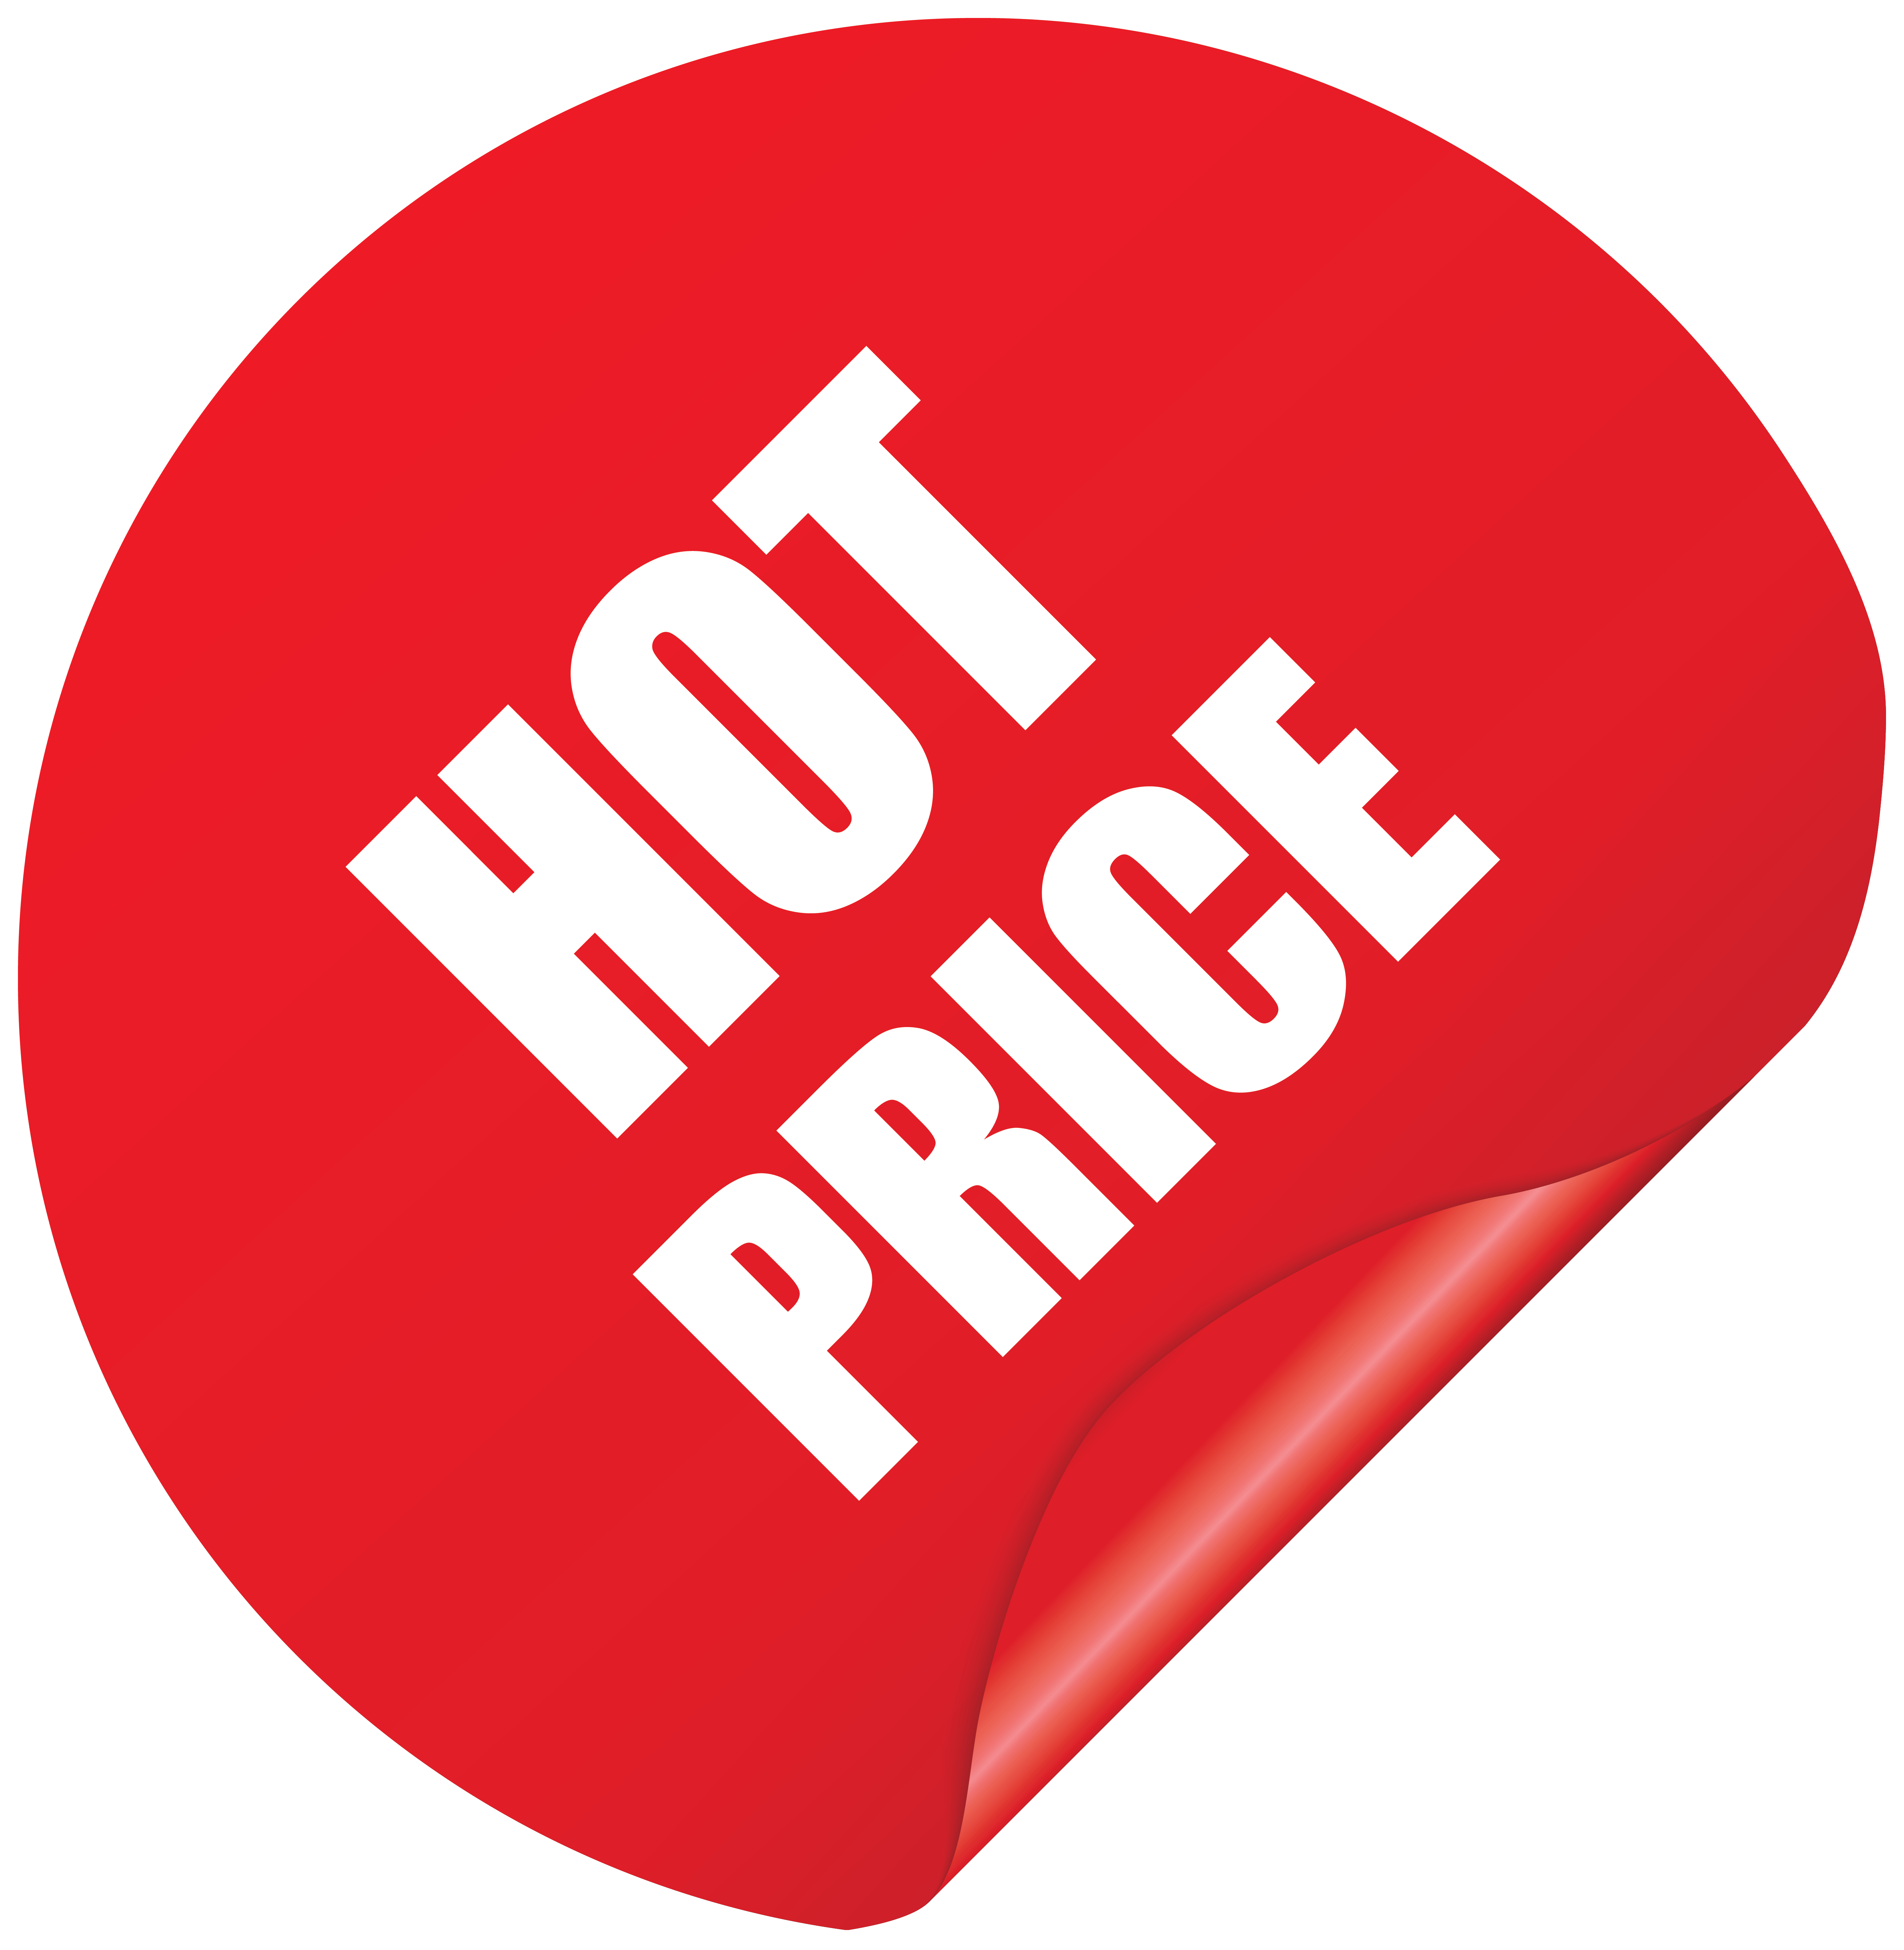 Transparent prices. Hot price sticker png